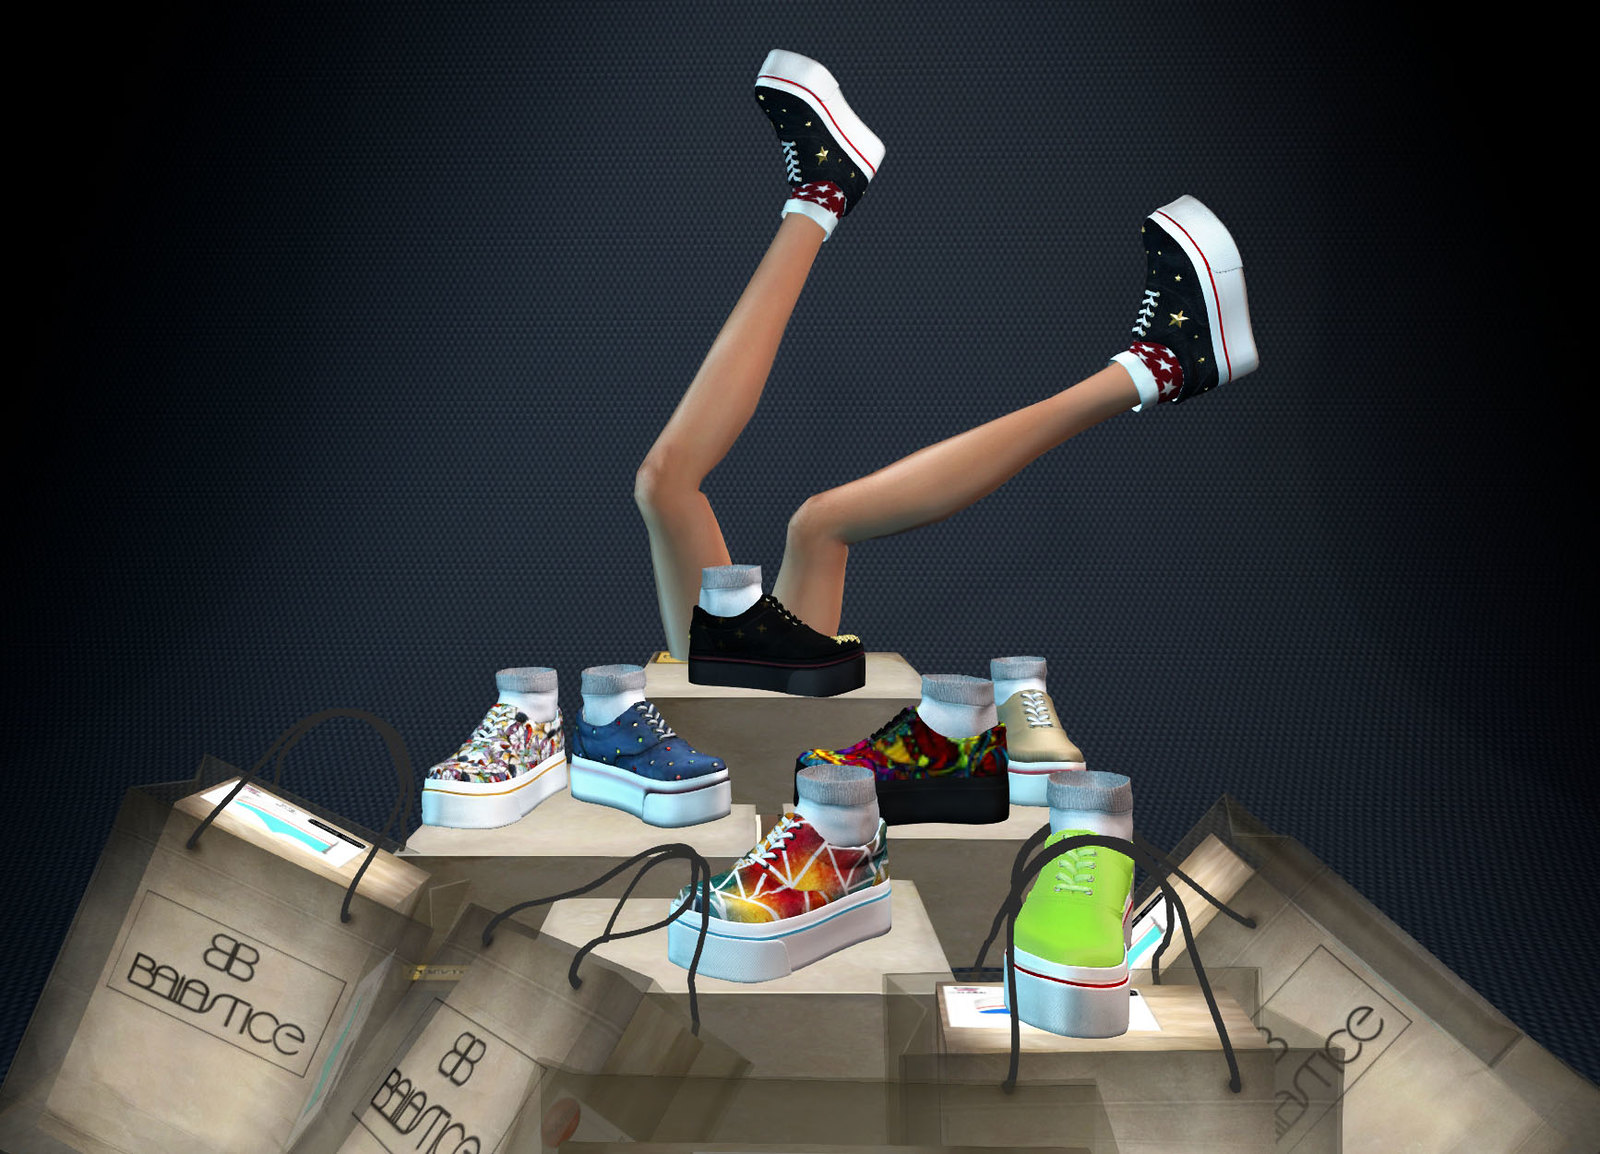 Baiastice - London Sneakers for Arcade Gacha